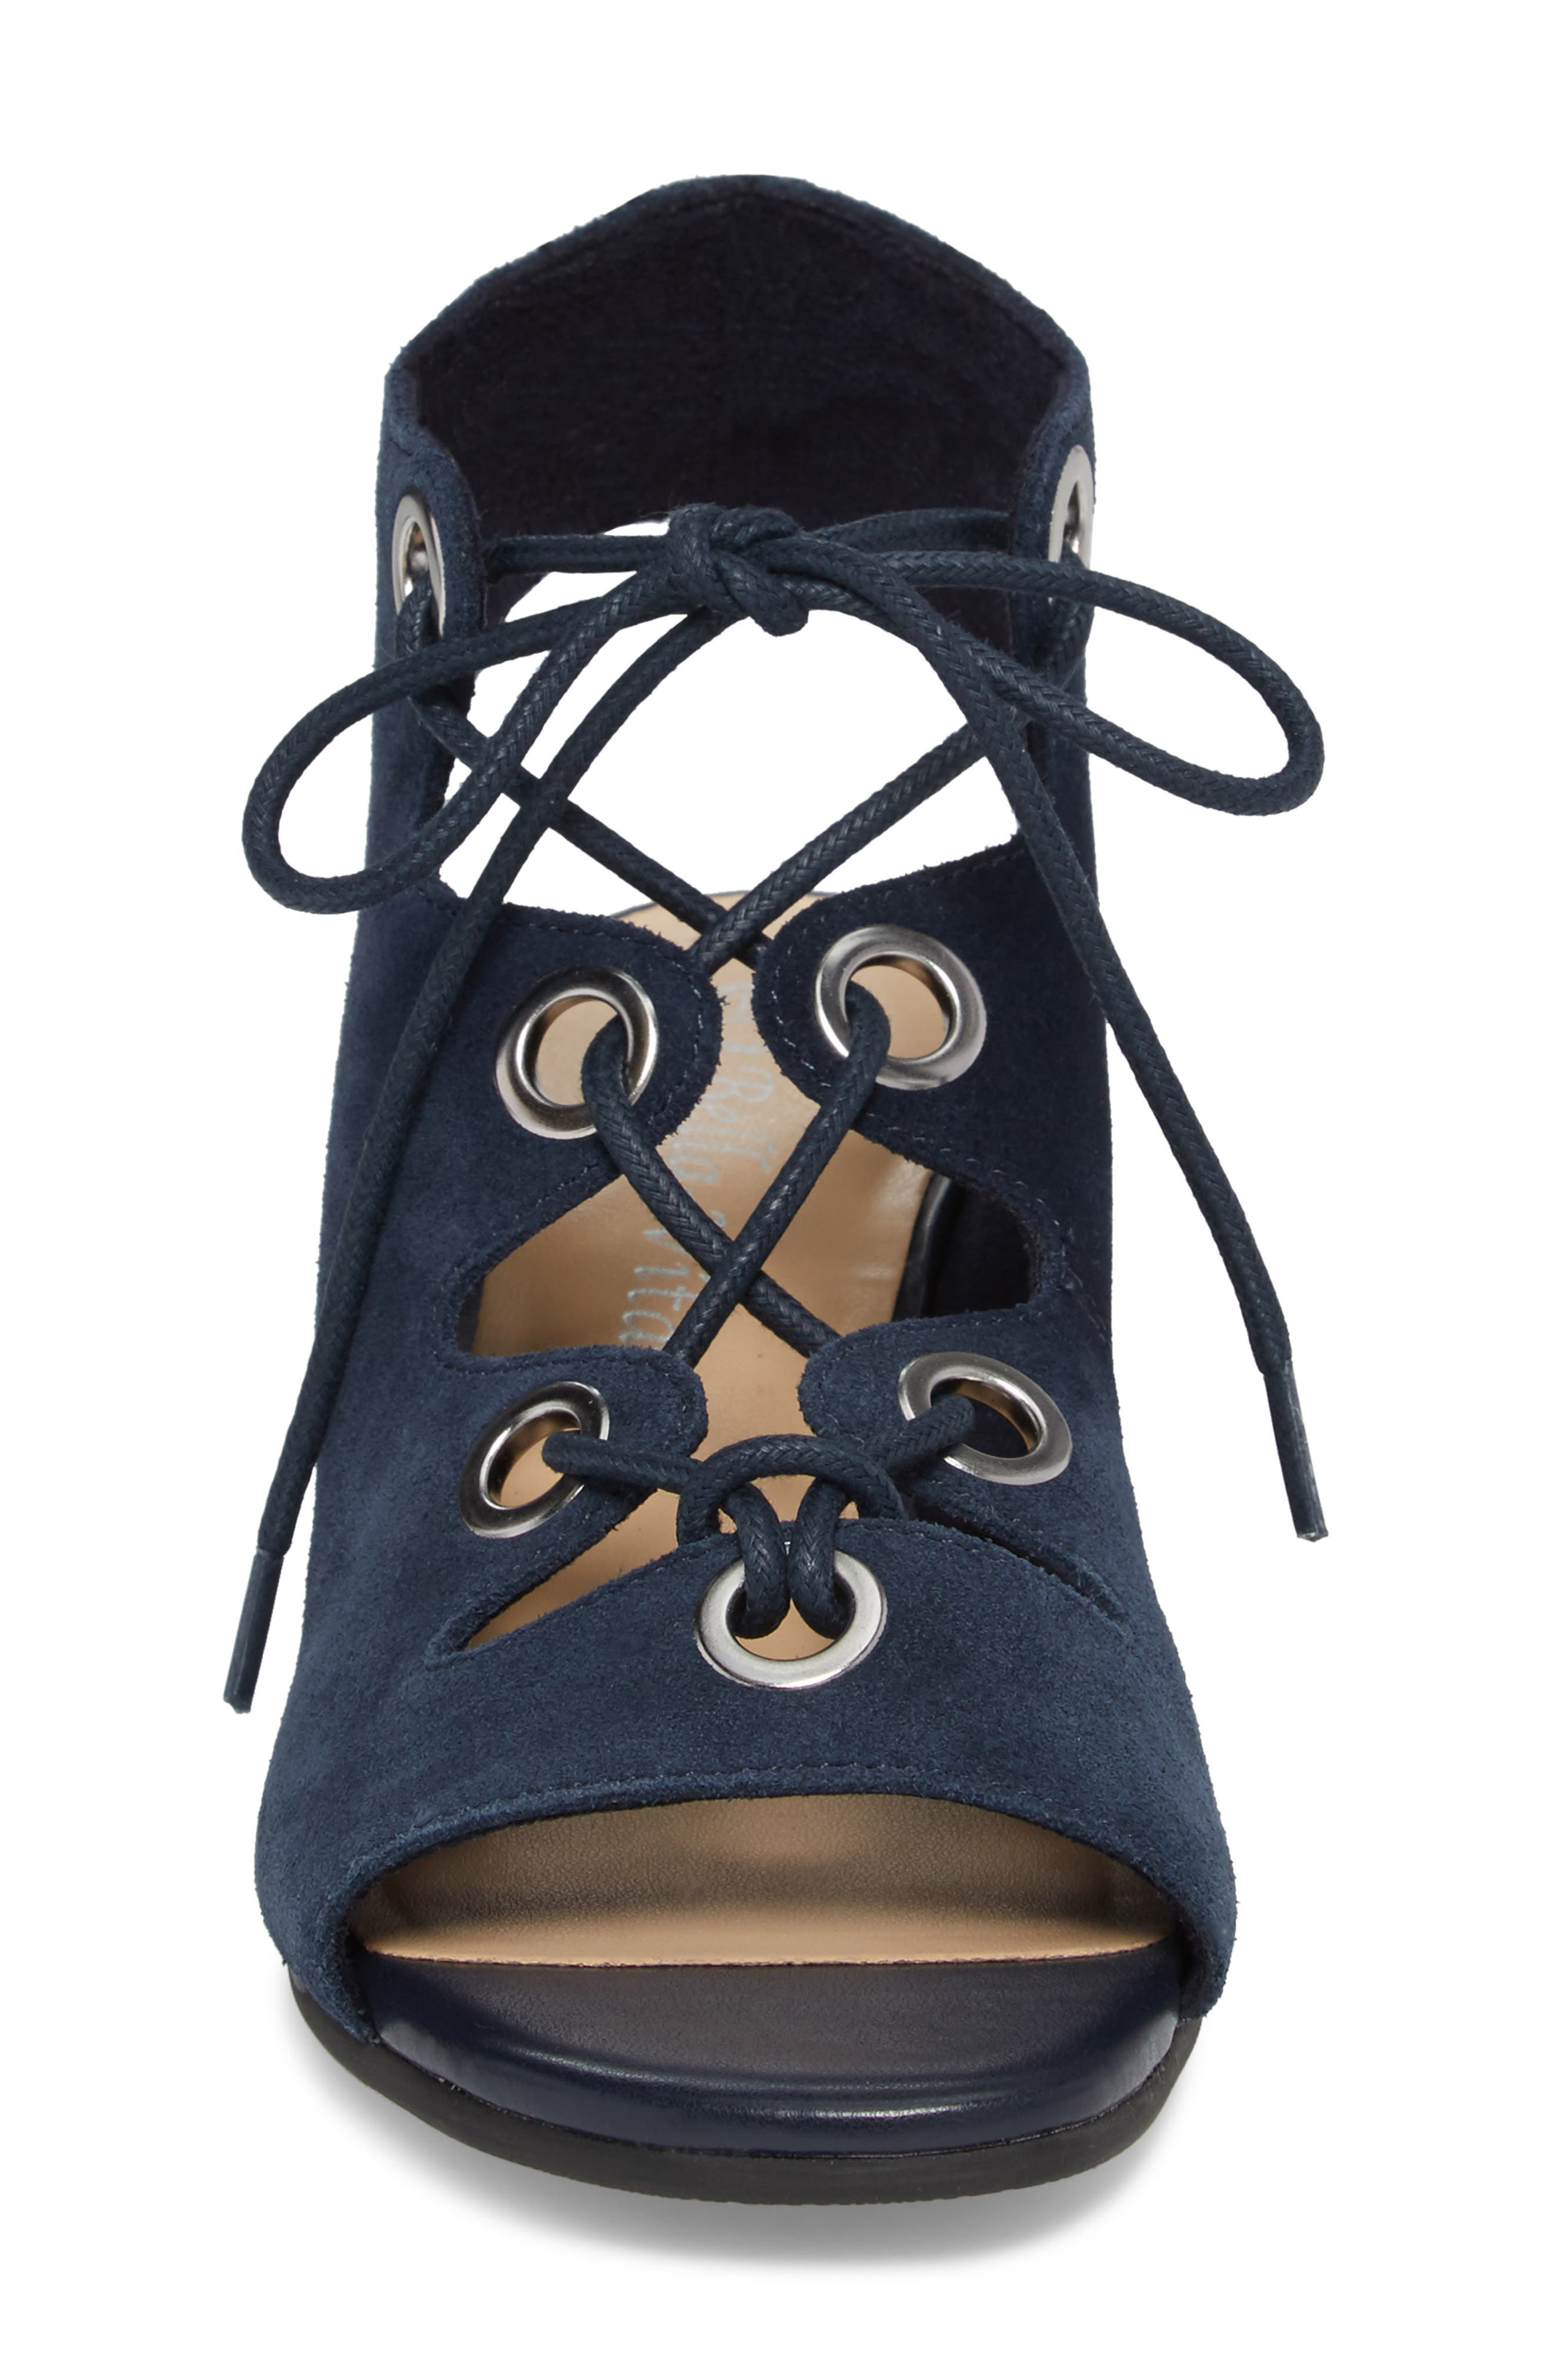 Ingrid Lace-Up Sandal,                             Alternate thumbnail 4, color,                             Navy Suede